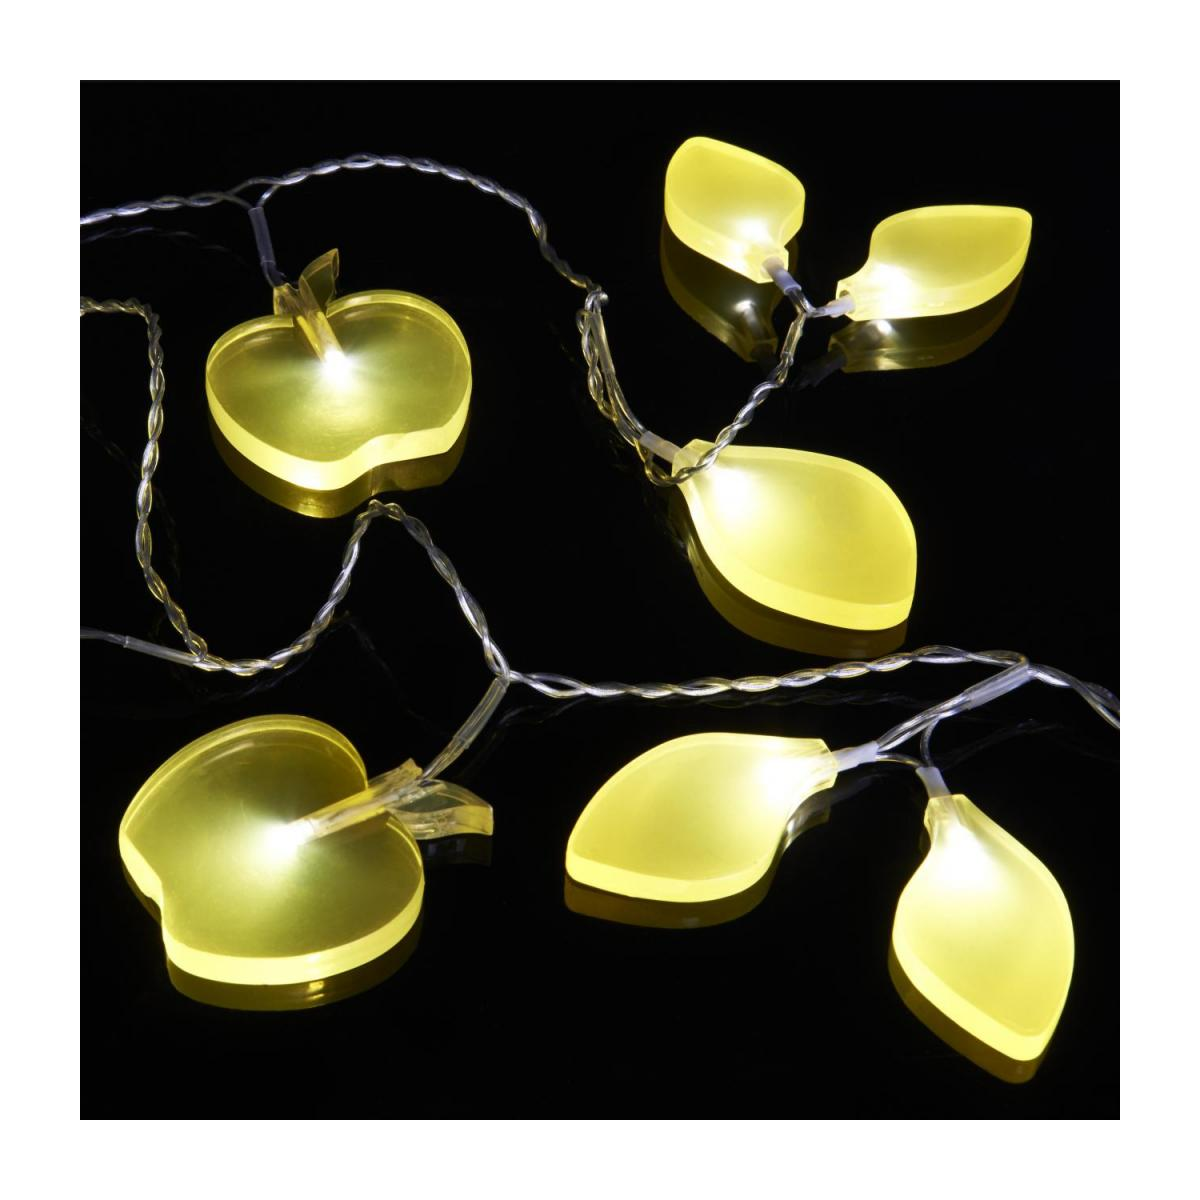 24-light fairy lights - frosted yellow apples n°2